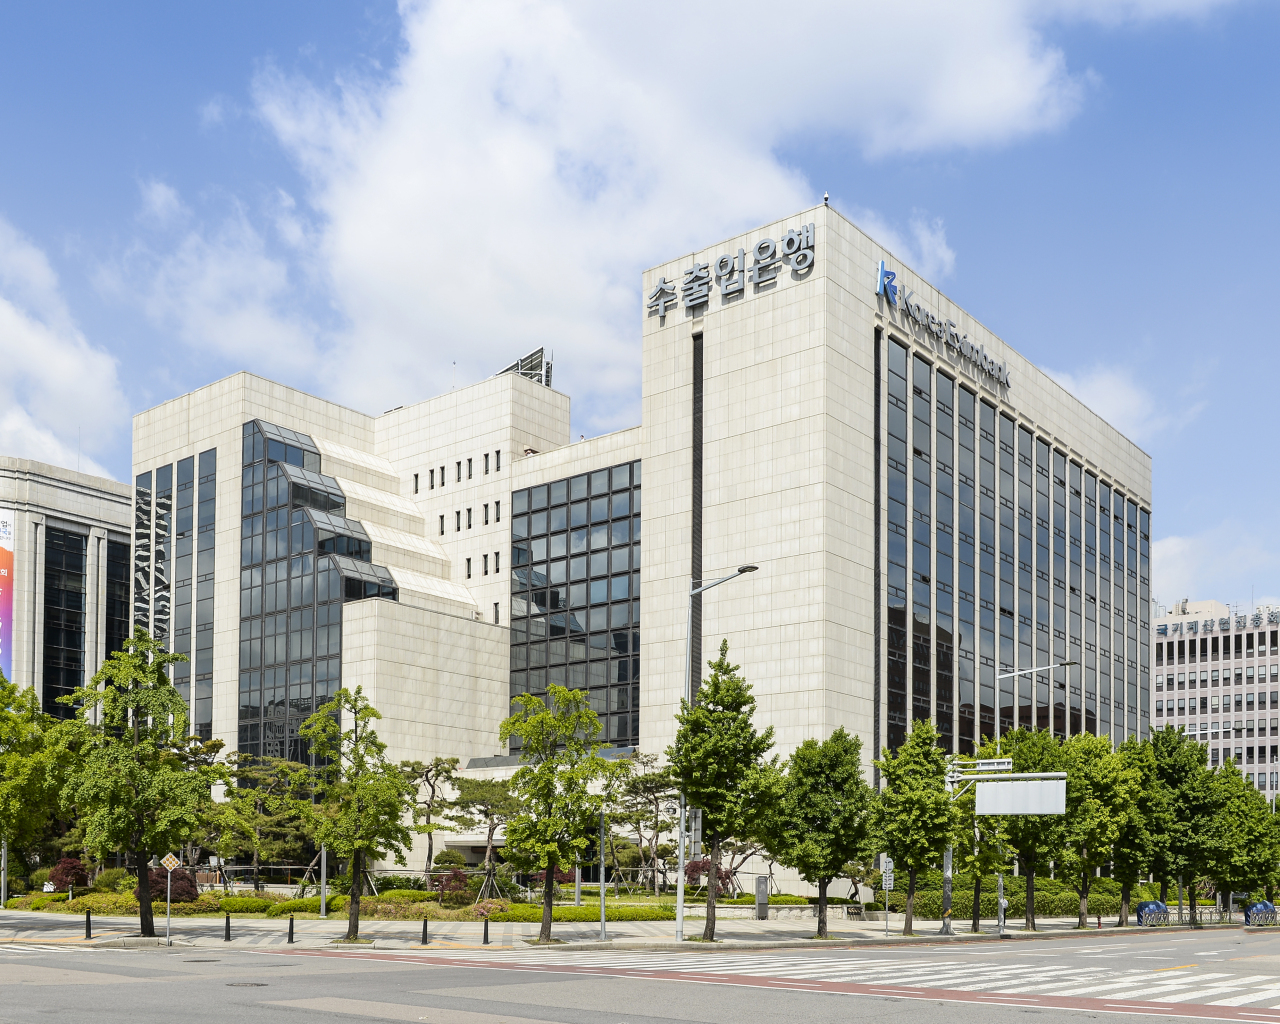 Headquarters of the Export-Import Bank of Korea (Eximbank)